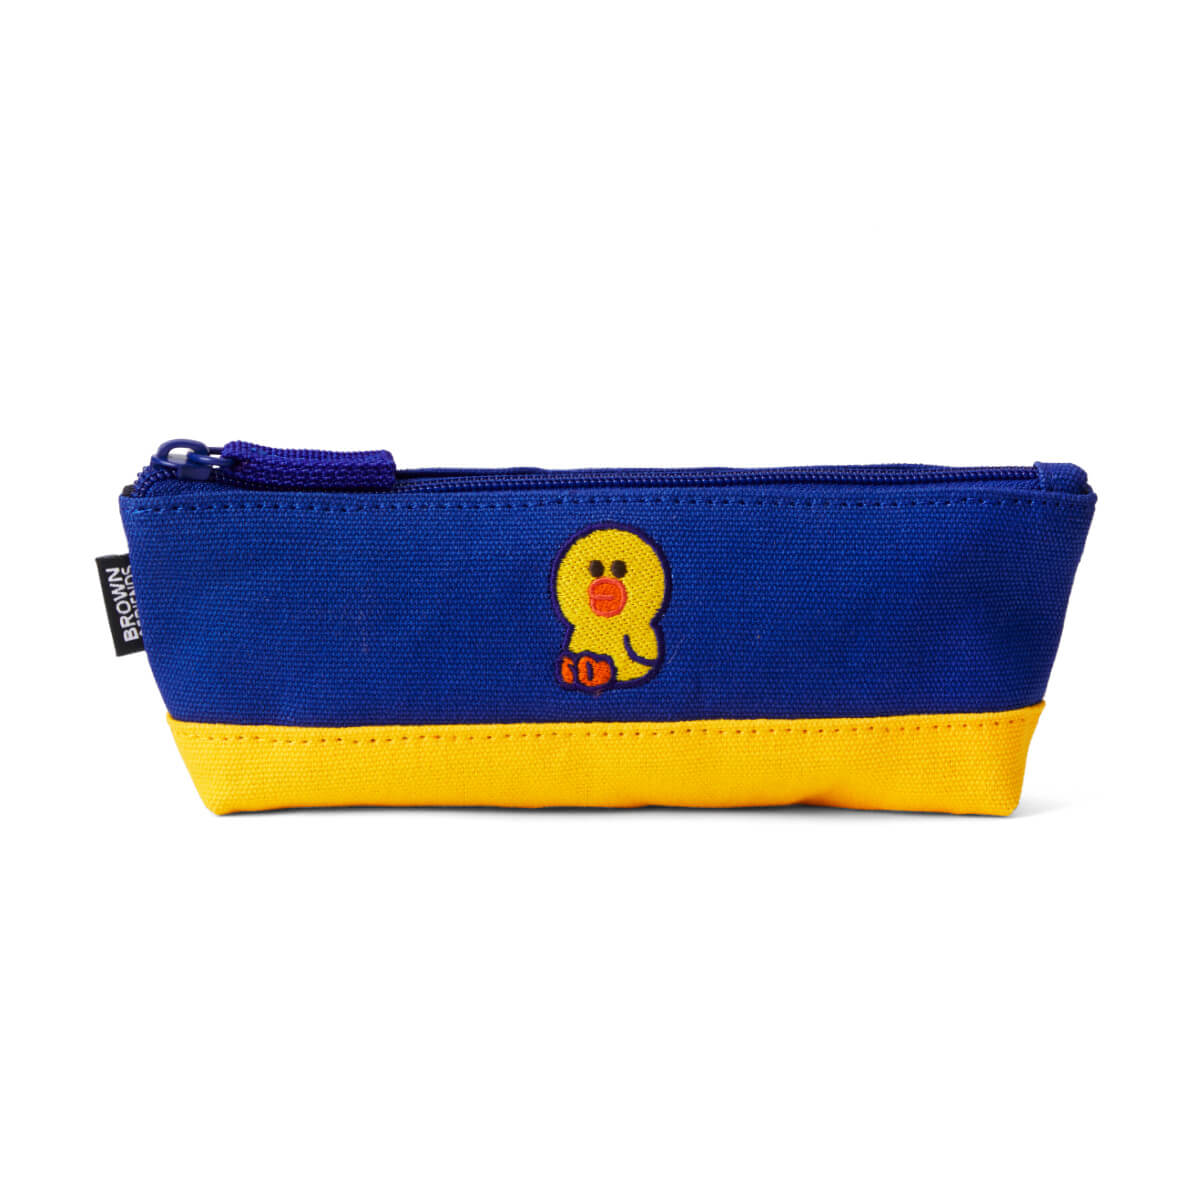 BF SALLY 20 University Pencil Case Blue